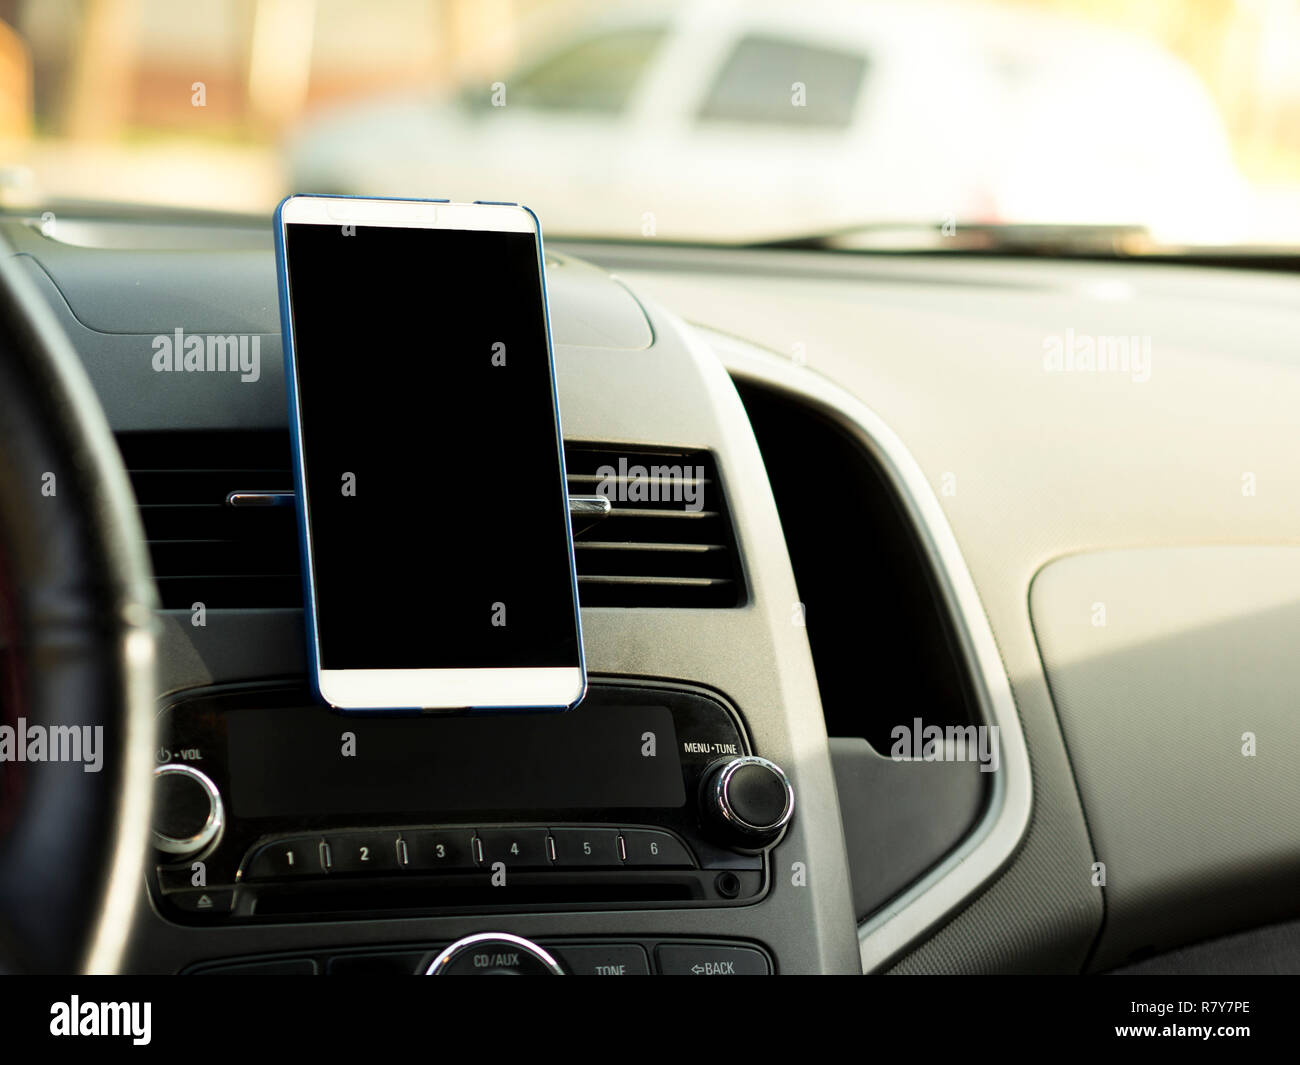 mobile phone located in the center of the vehicle console. Black screen phone in the car - Stock Image